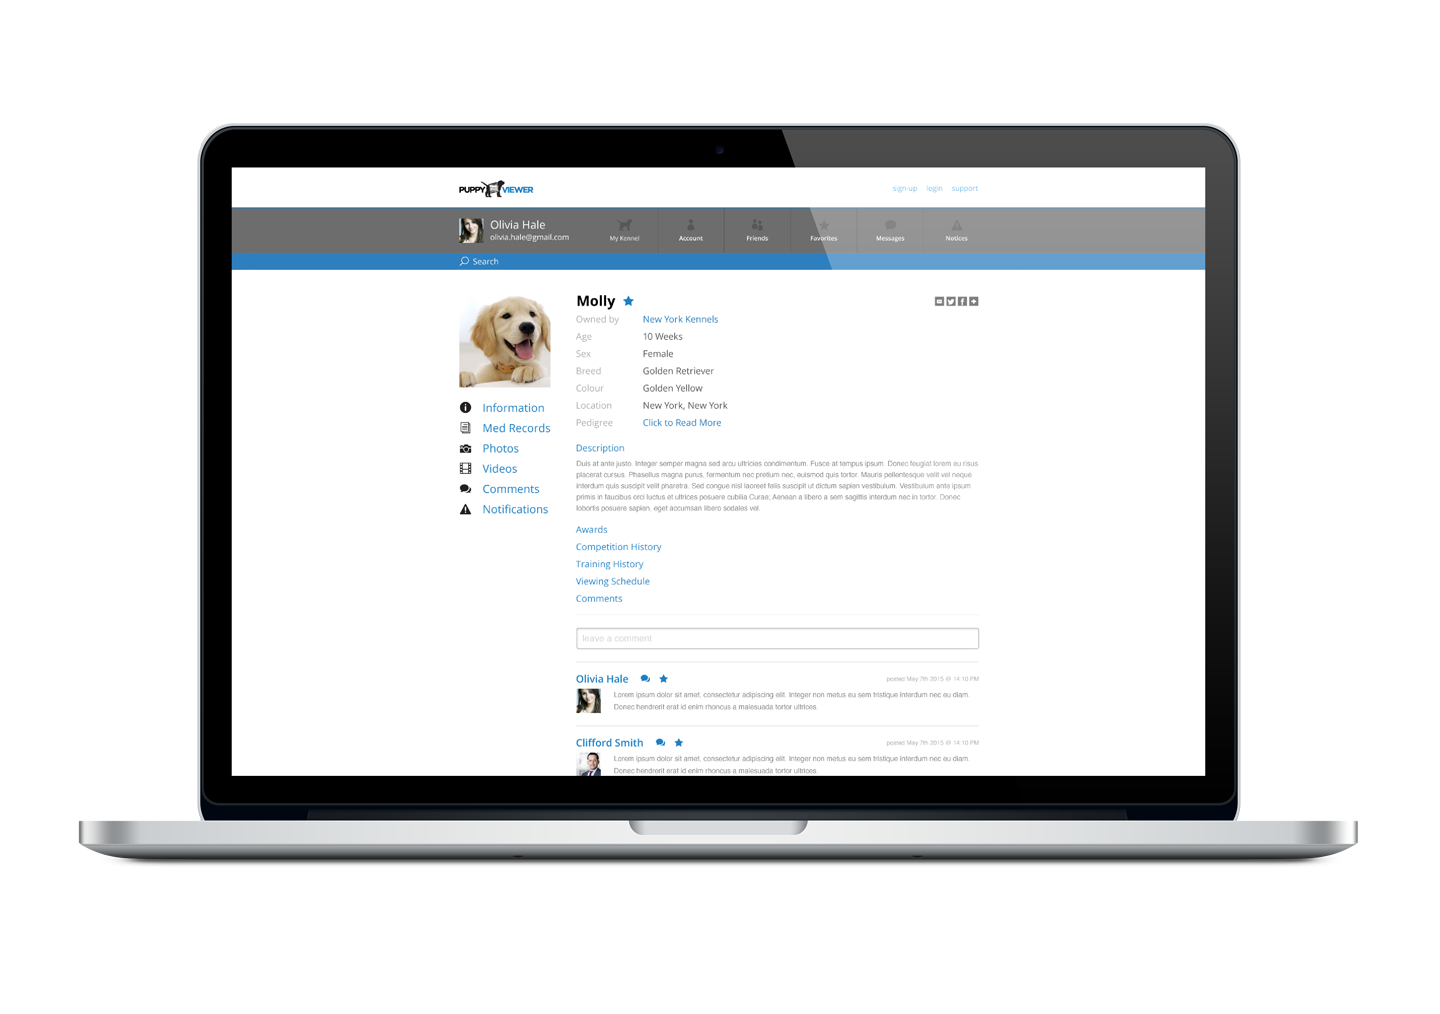 Puppyviewer network for finding your next dog